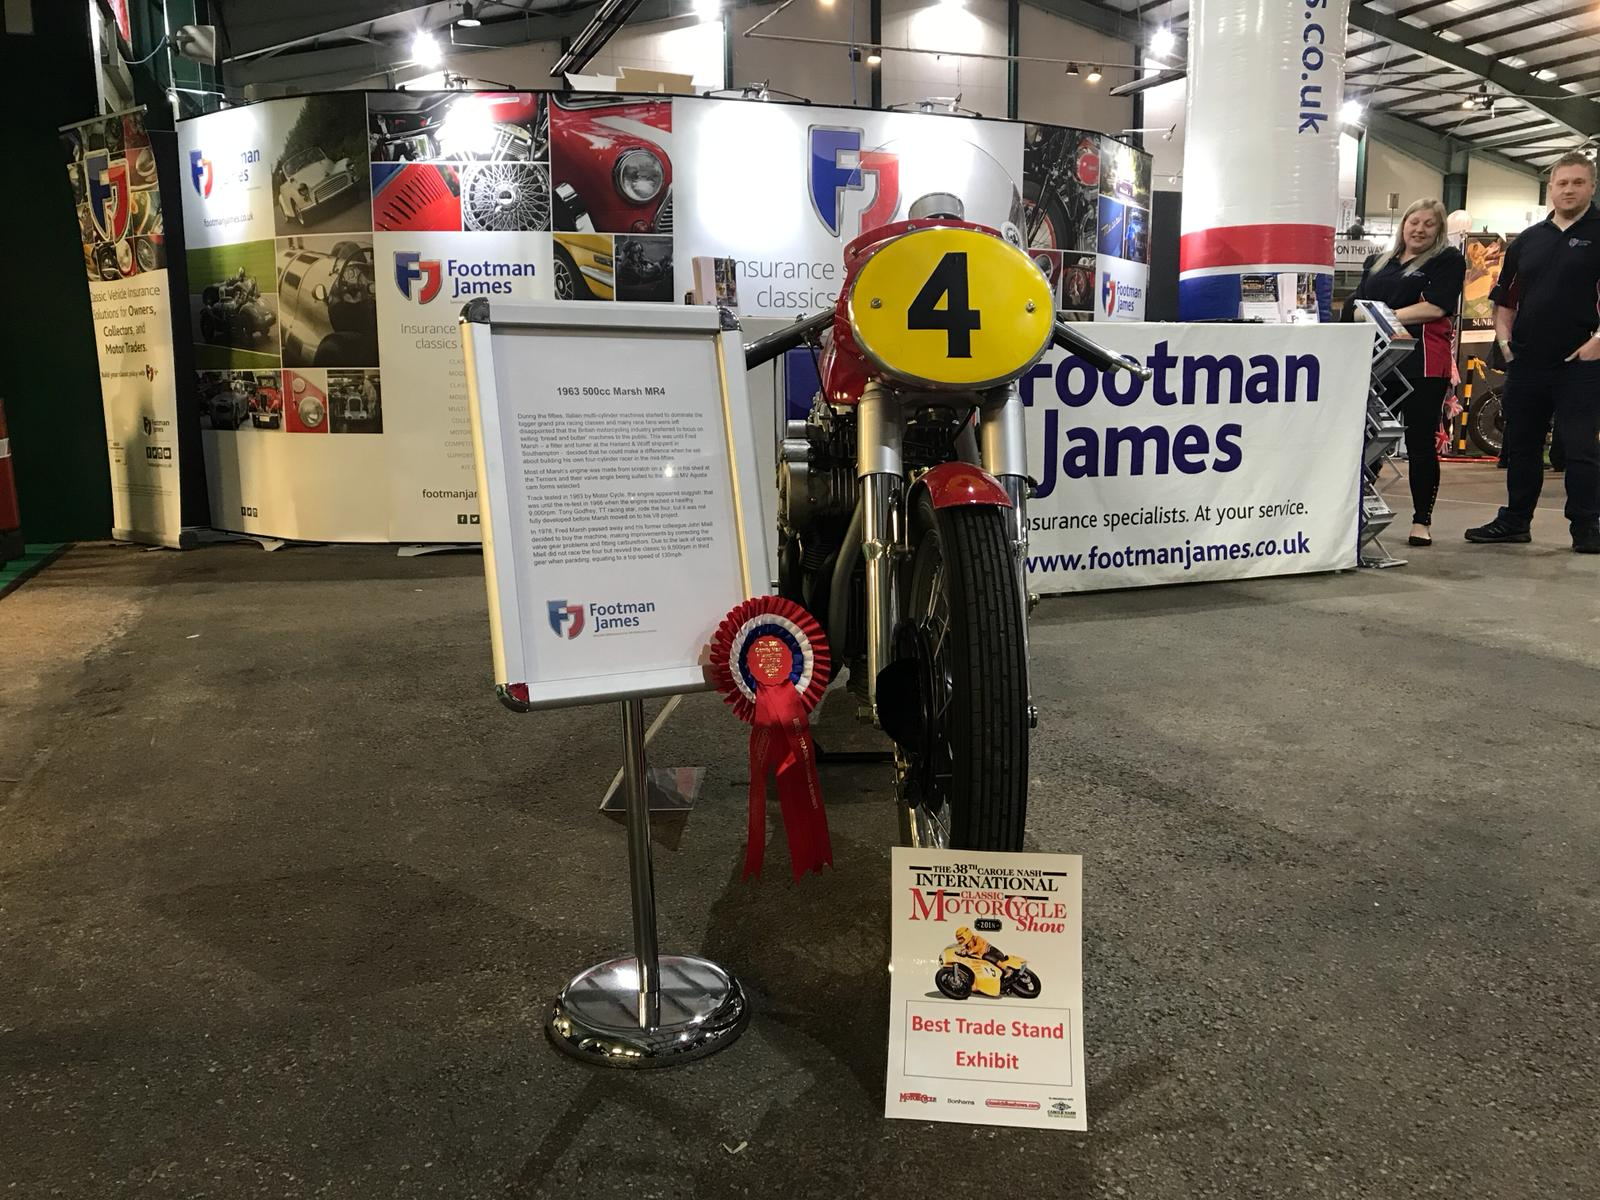 Our 1963 500cc Marsh MR4 on loan from The National Motorcycle Museum won Best Trade Stand Exhibit